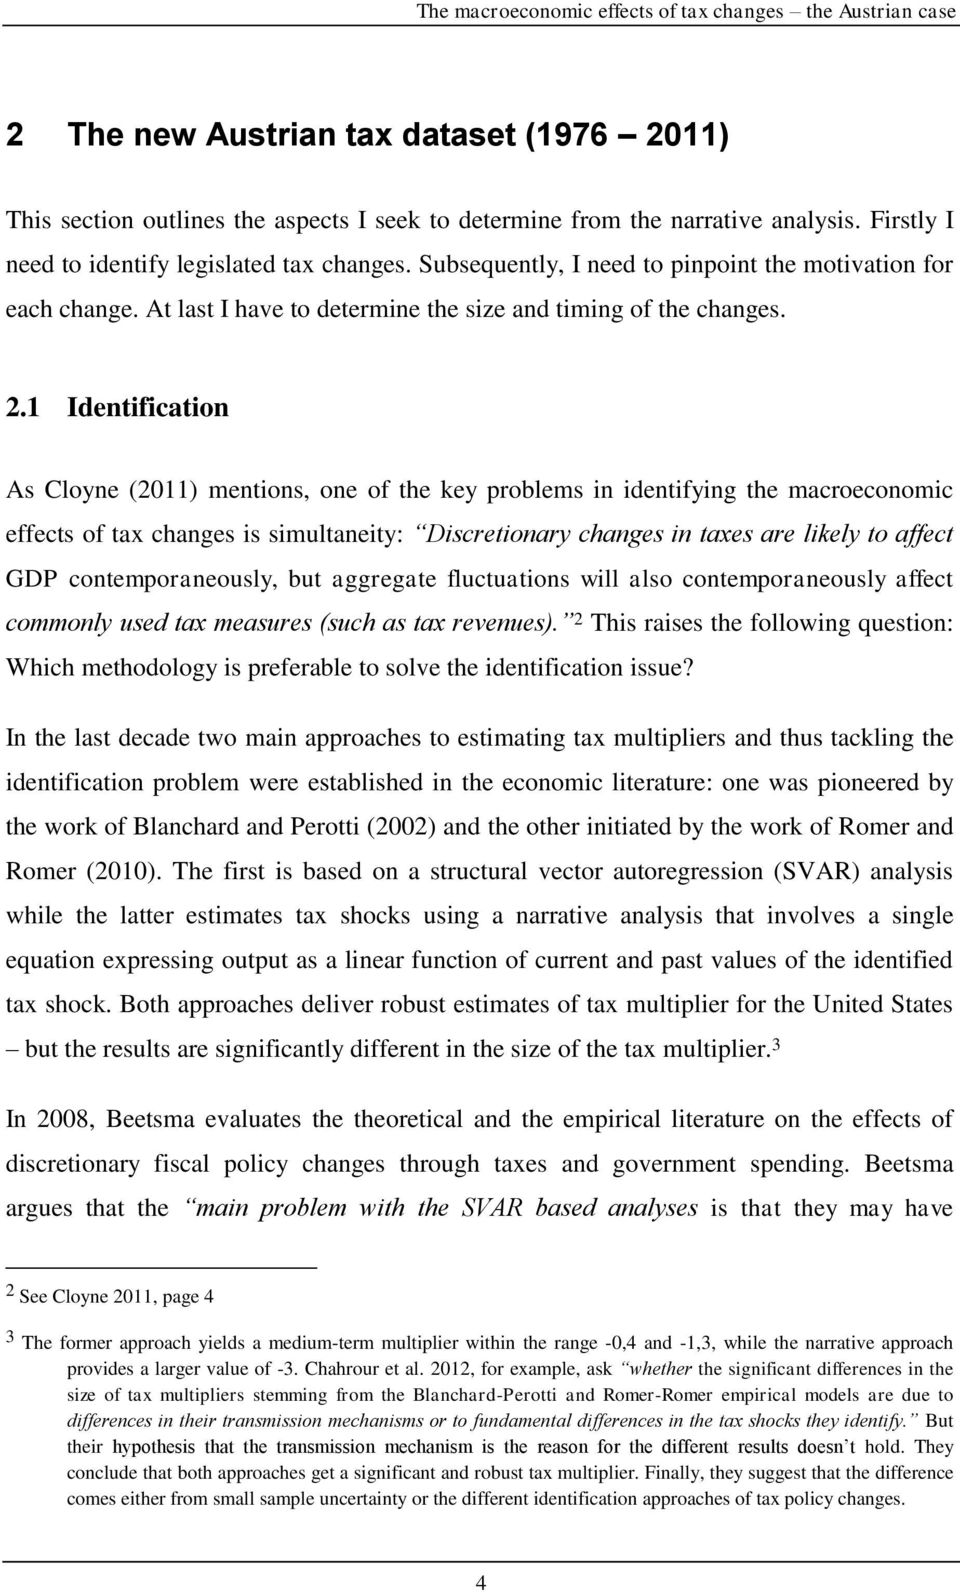 1 Identification As Cloyne (2011) mentions, one of the key problems in identifying the macroeconomic effects of tax changes is simultaneity: Discretionary changes in taxes are likely to affect GDP